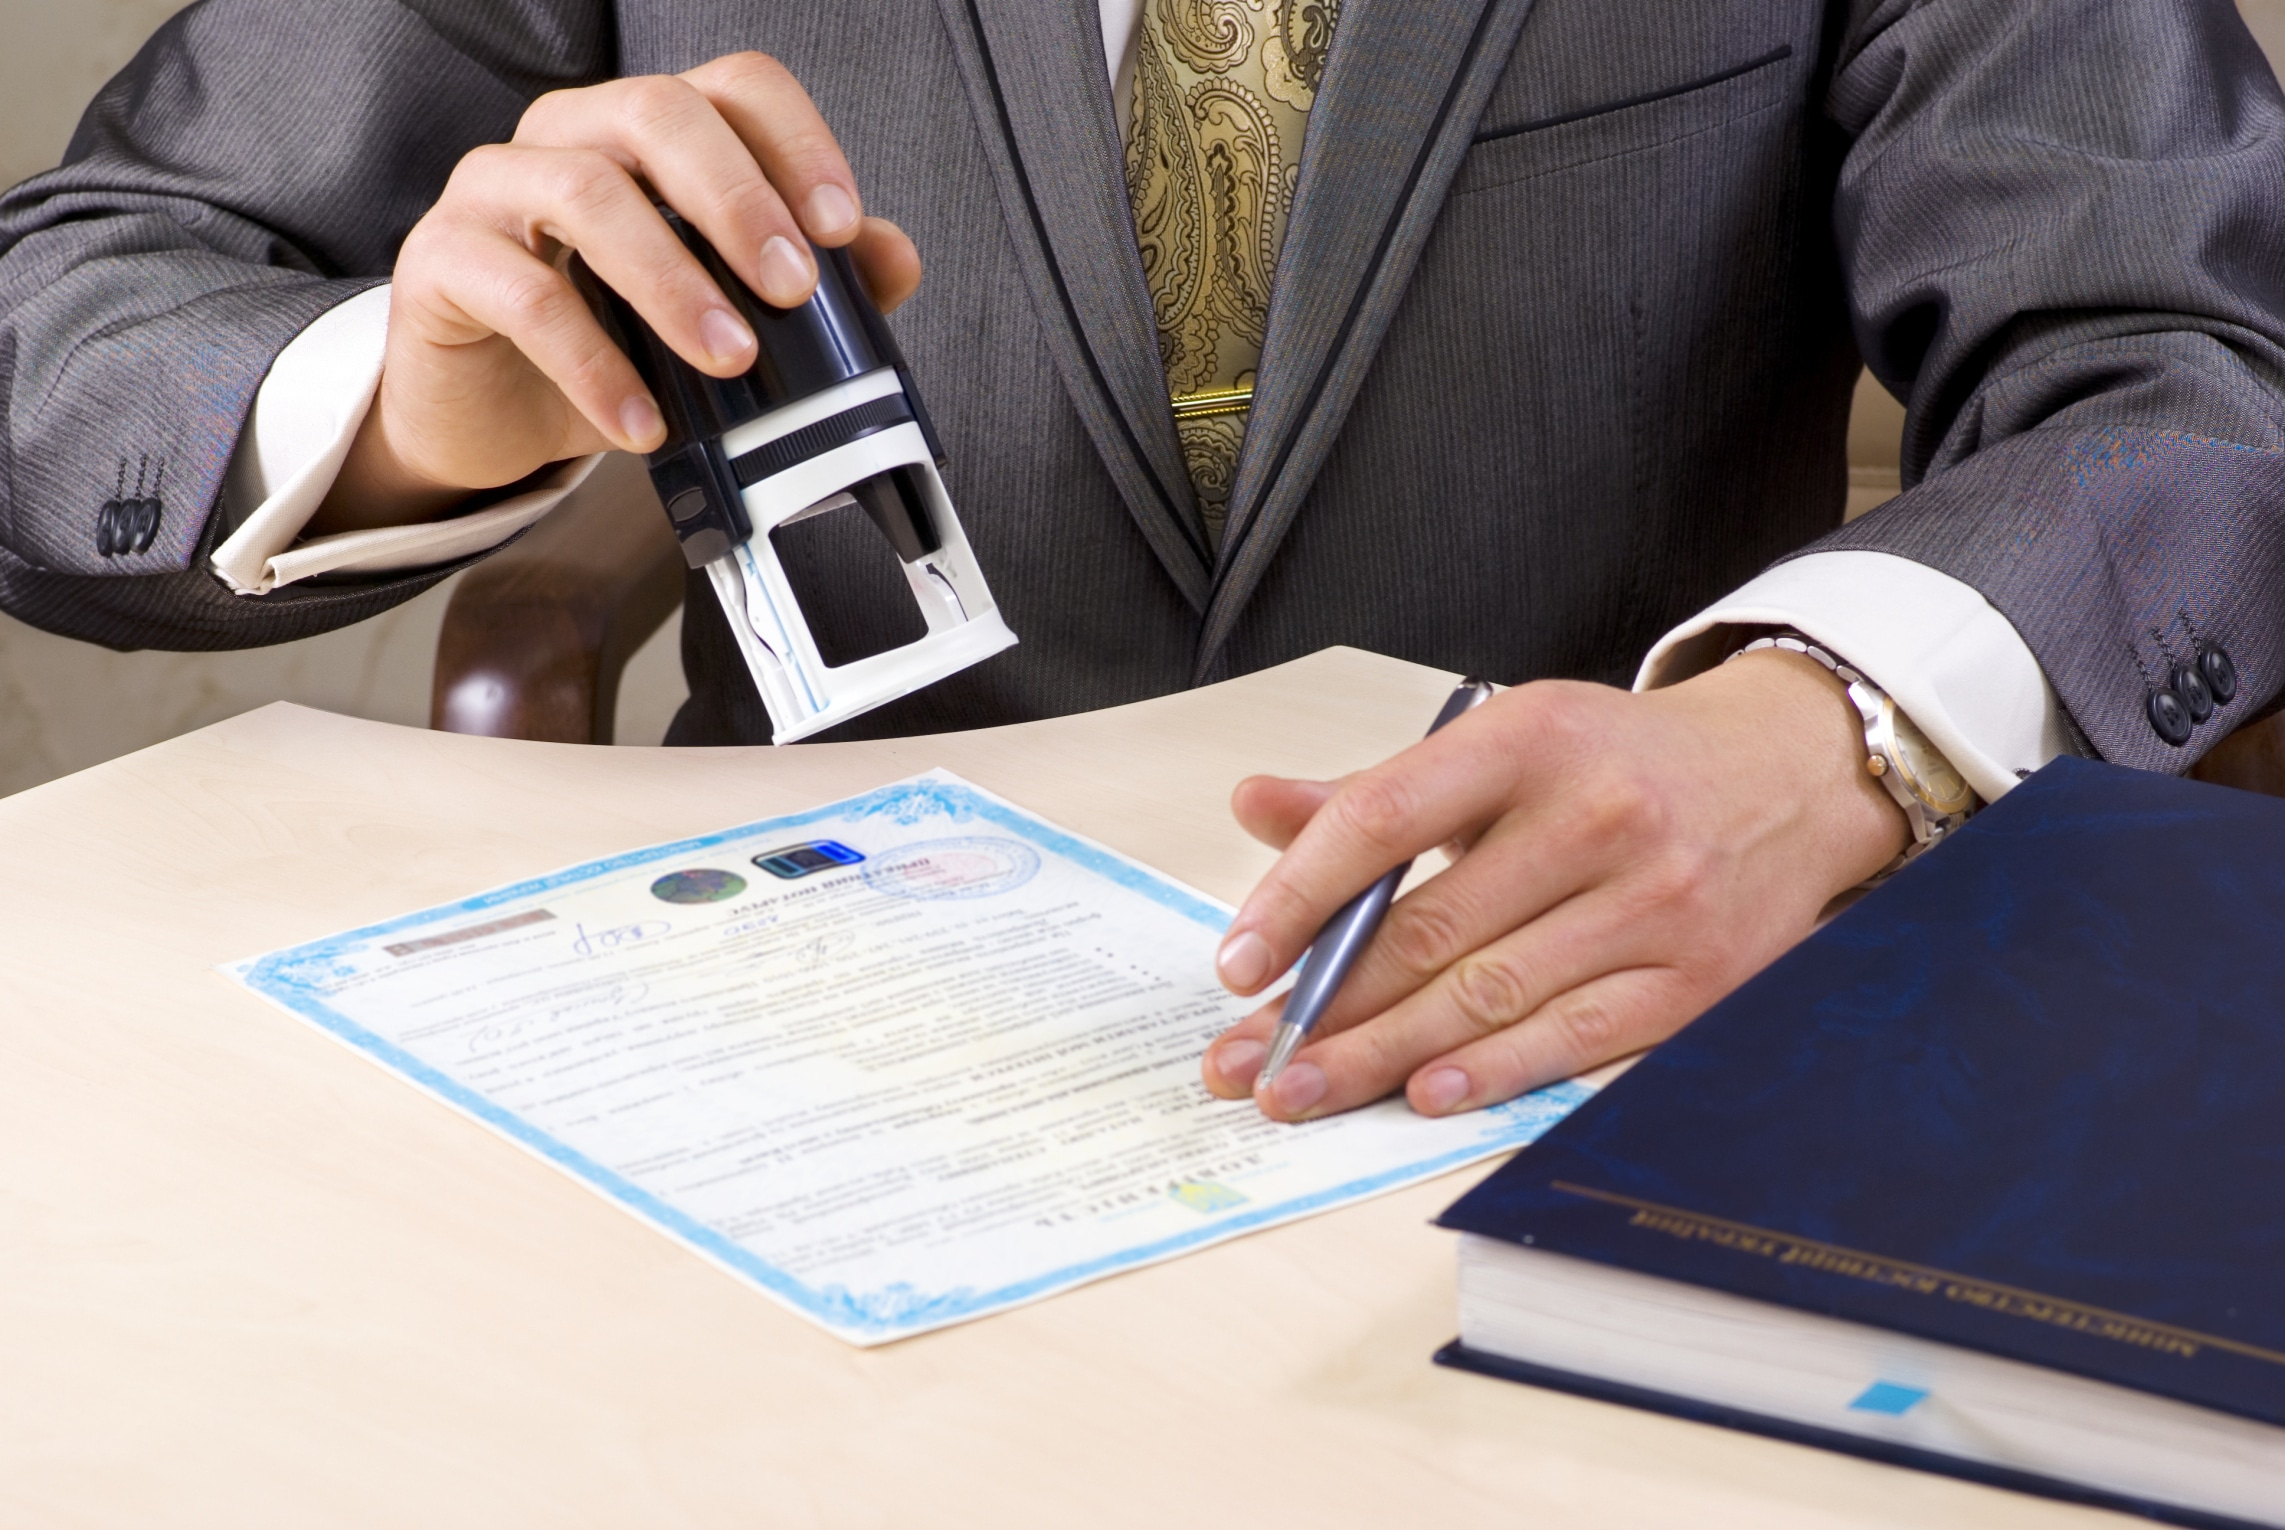 document attestation and apostille services